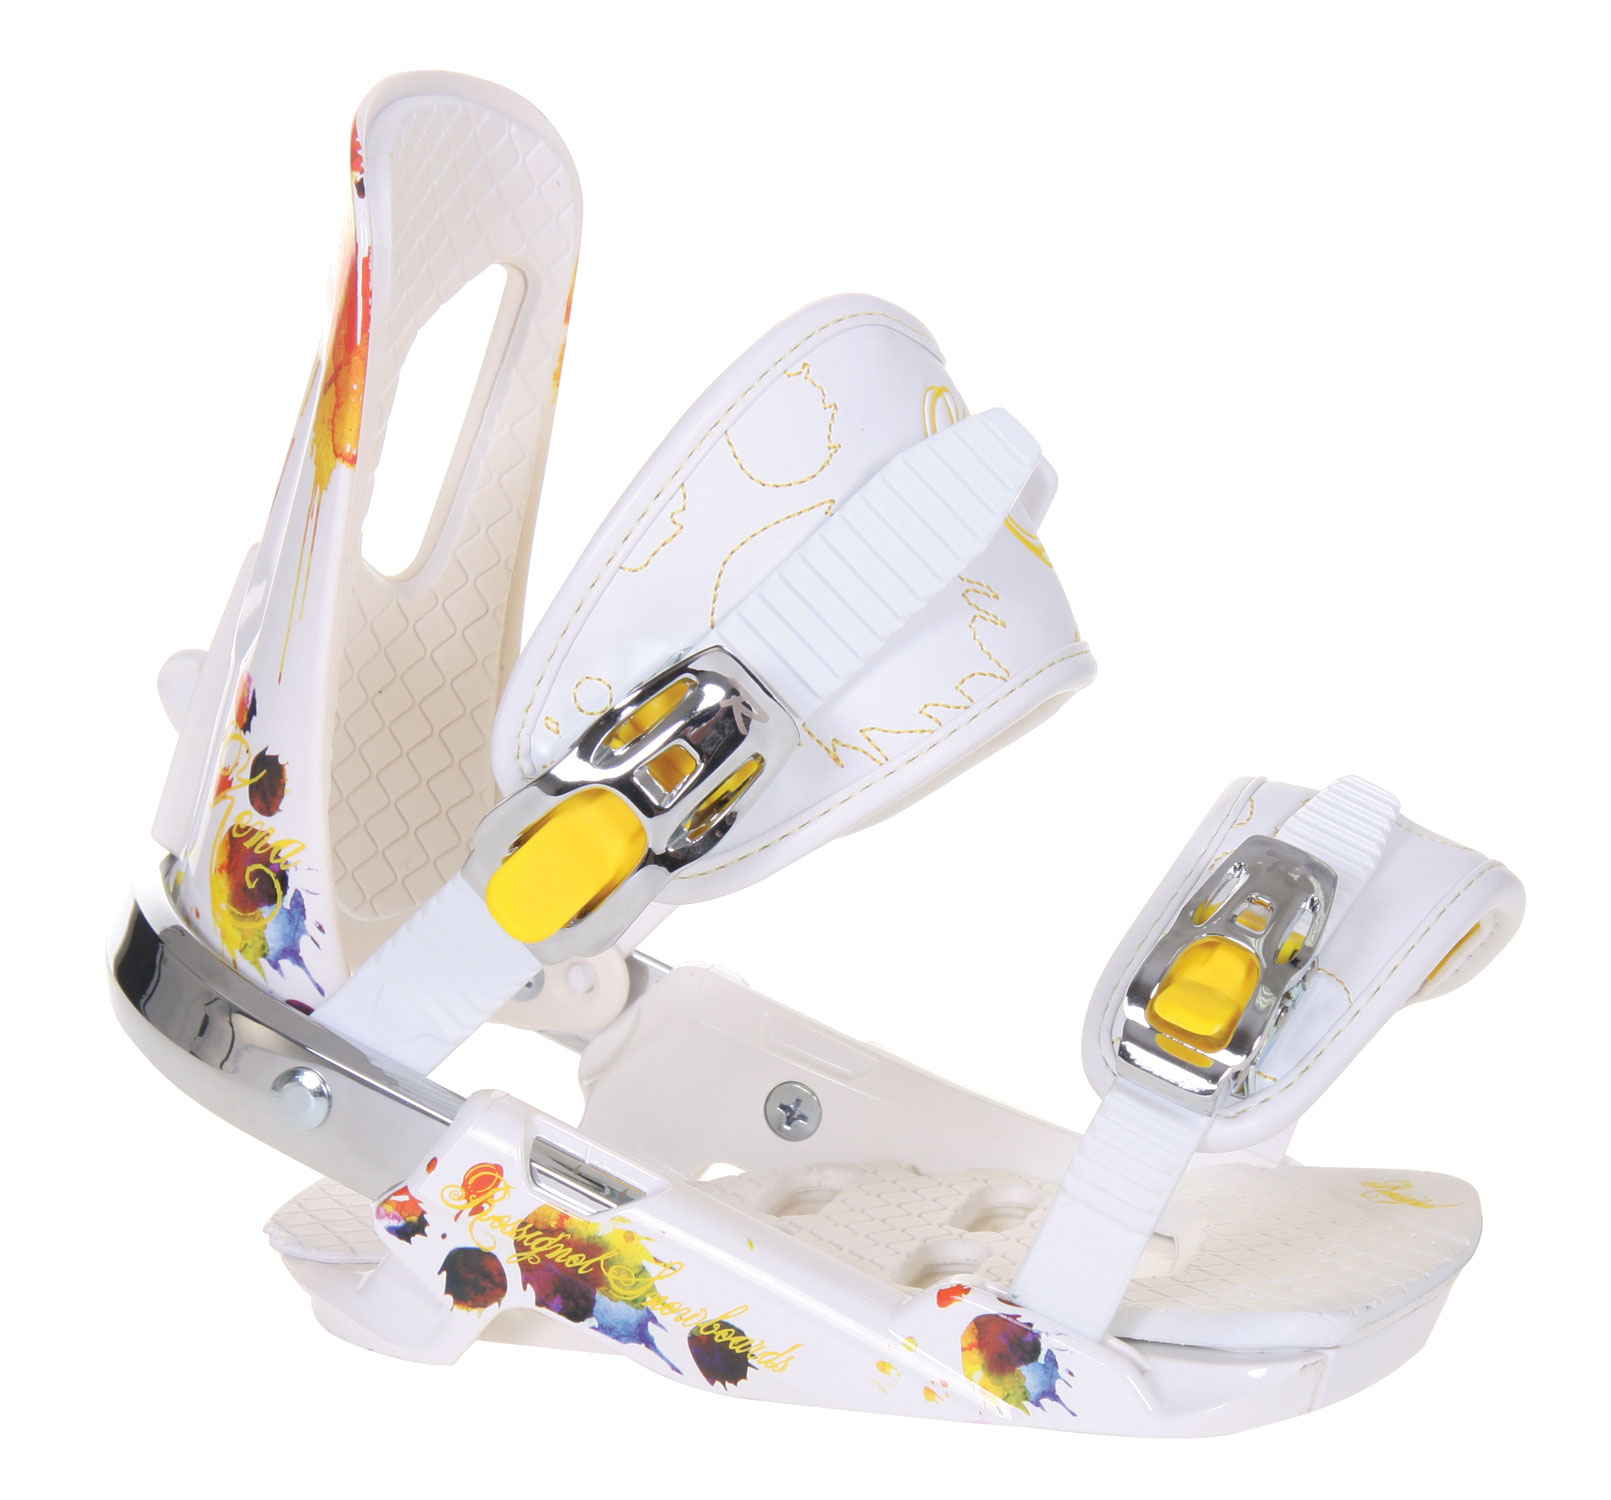 Snowboard The new Rossignol Women's Zena Snowboard Bindings are designed to limit shock factor without sacrificing the agility of these bindings. Any product and material out there designed to help response time has been employed in these bindings. Its a point and click effort with these bindings, your limits are endless. Designed in both white pink, and white yellow these bindings will match anyone style, without sacrificing any performance. So if you looking for some agile, performance bindings you've found your choice.Key Features of The Rossignol Zena Women's Snowboard Bindings: HC-S Baseplate: DUPONT Zytel polyamide with fiberglass and stainless steel stingers / Adjustable 6082 T6 aluminum heel cup with boot size indicator Puffy Pads Gas Pedal: Adjustable footbed / Progressive toe ramp / Thermoformed EVA padding B-Back Highback: DUPONT Zytel polyamide / Thermoformed EVA padding / Tool-free forward lean adjuster / Rotation adjuster 3D HS Straps: Anatomic 3D shape / DUPONT Hytrel polyamide reinforcement with thermoformed complex EVA padding / Synthetic leather layers / New tool-free length adjuster / Anti-rotation ankle and toe straps SLC2 Light Buckles with Fit In System: Aircraft aluminum / Exclusive monolever design / Easy engaging / Fast gearing / Smooth releasing system - $95.95